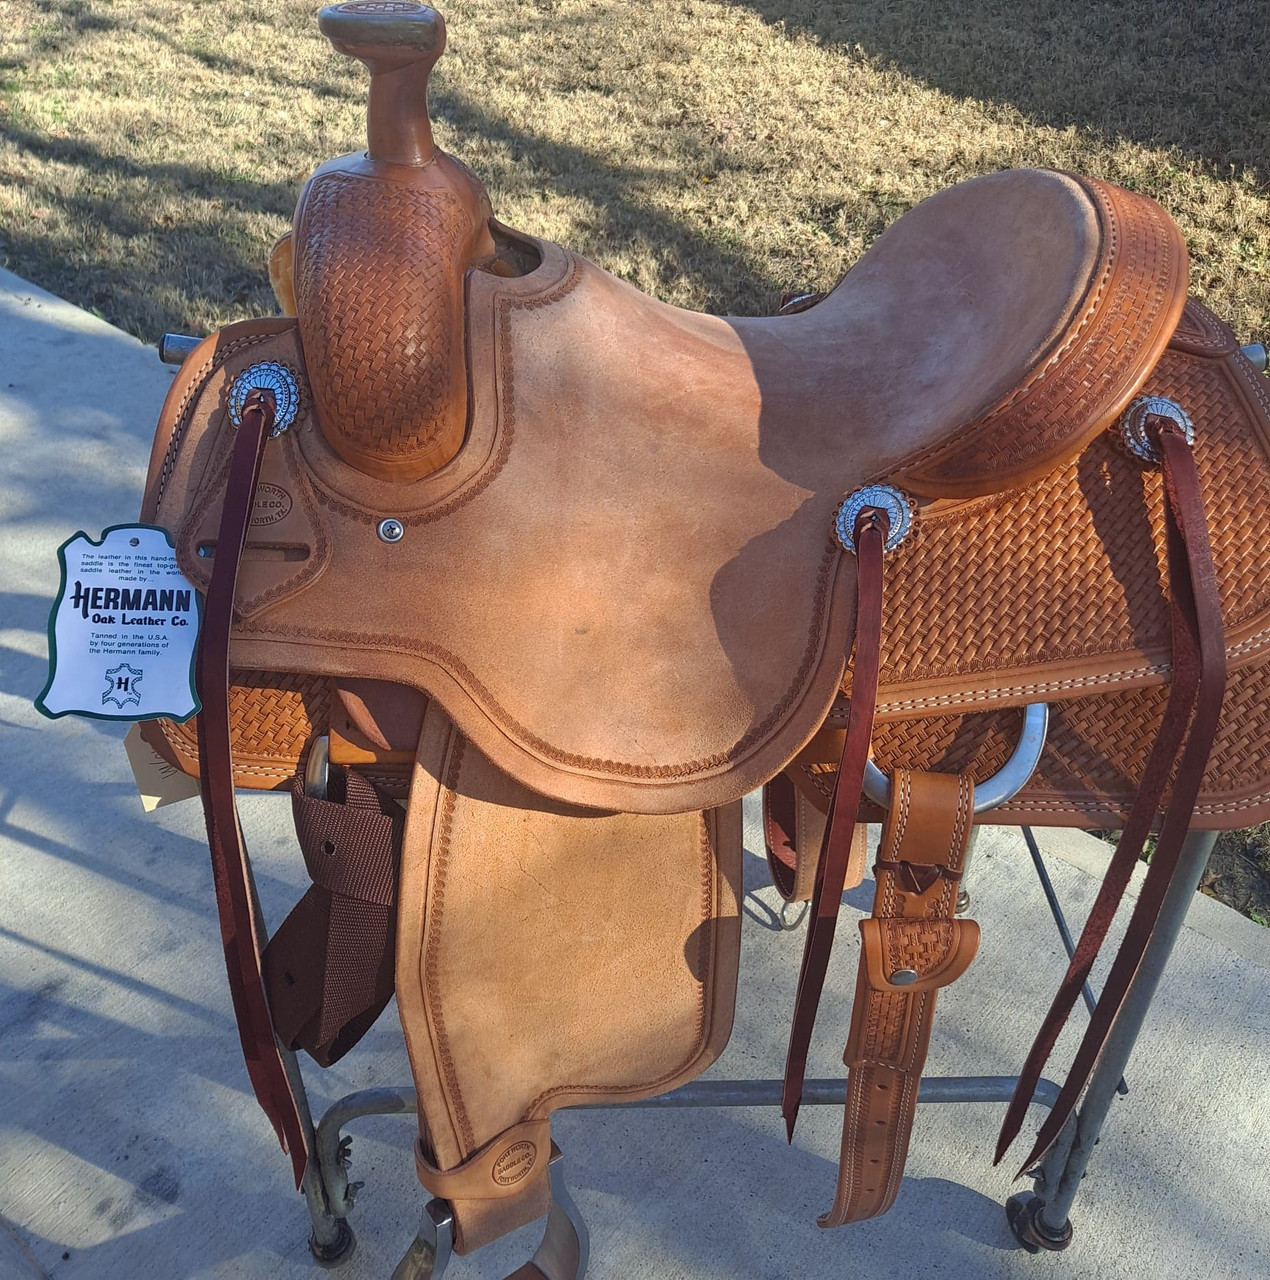 New Roping Saddle by Fort Worth Saddle Co with 14 inch seat. Hermann Oak leather. Cheyenne roll roughout seat. 6 strings. Border tooled roughout contact points. Hand tooled basket weave skirt and pommel. Gullet size is 6.75 inch, weight is 34lbs, and skirt is 26.5 inch. Made in USA. Limited lifetime warranty.  S1203